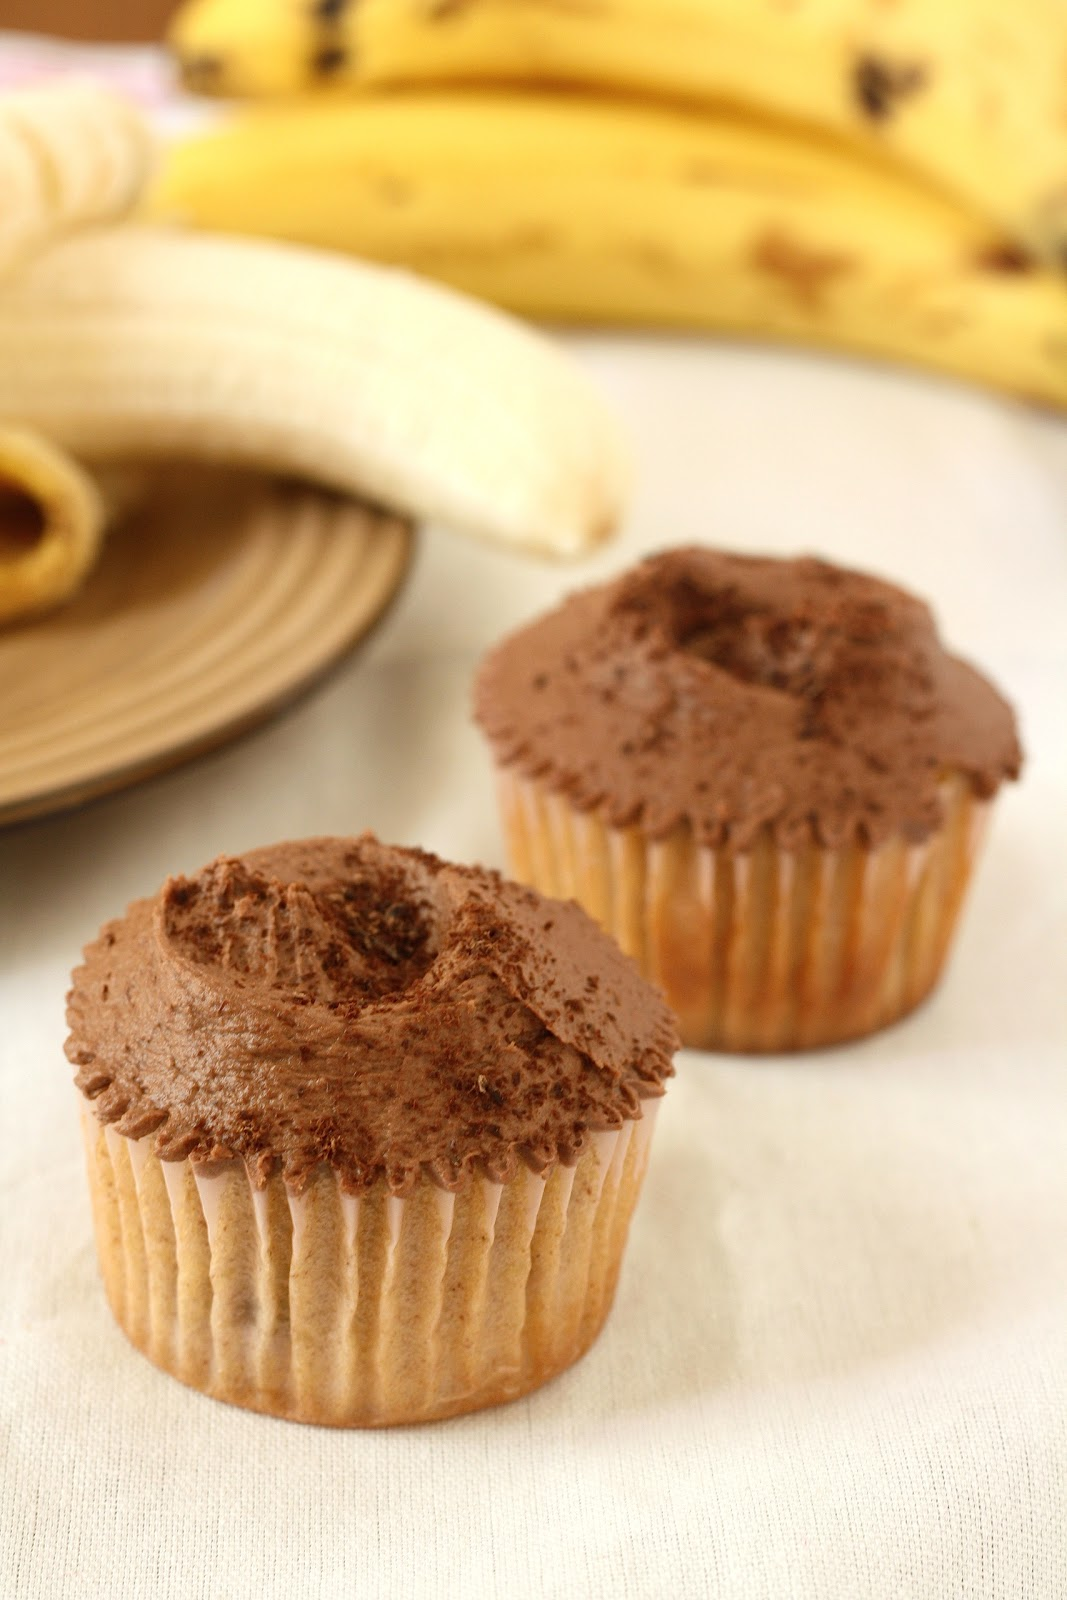 Hummingbird Bakery Banana And Chocolate Cupcakes Recipe